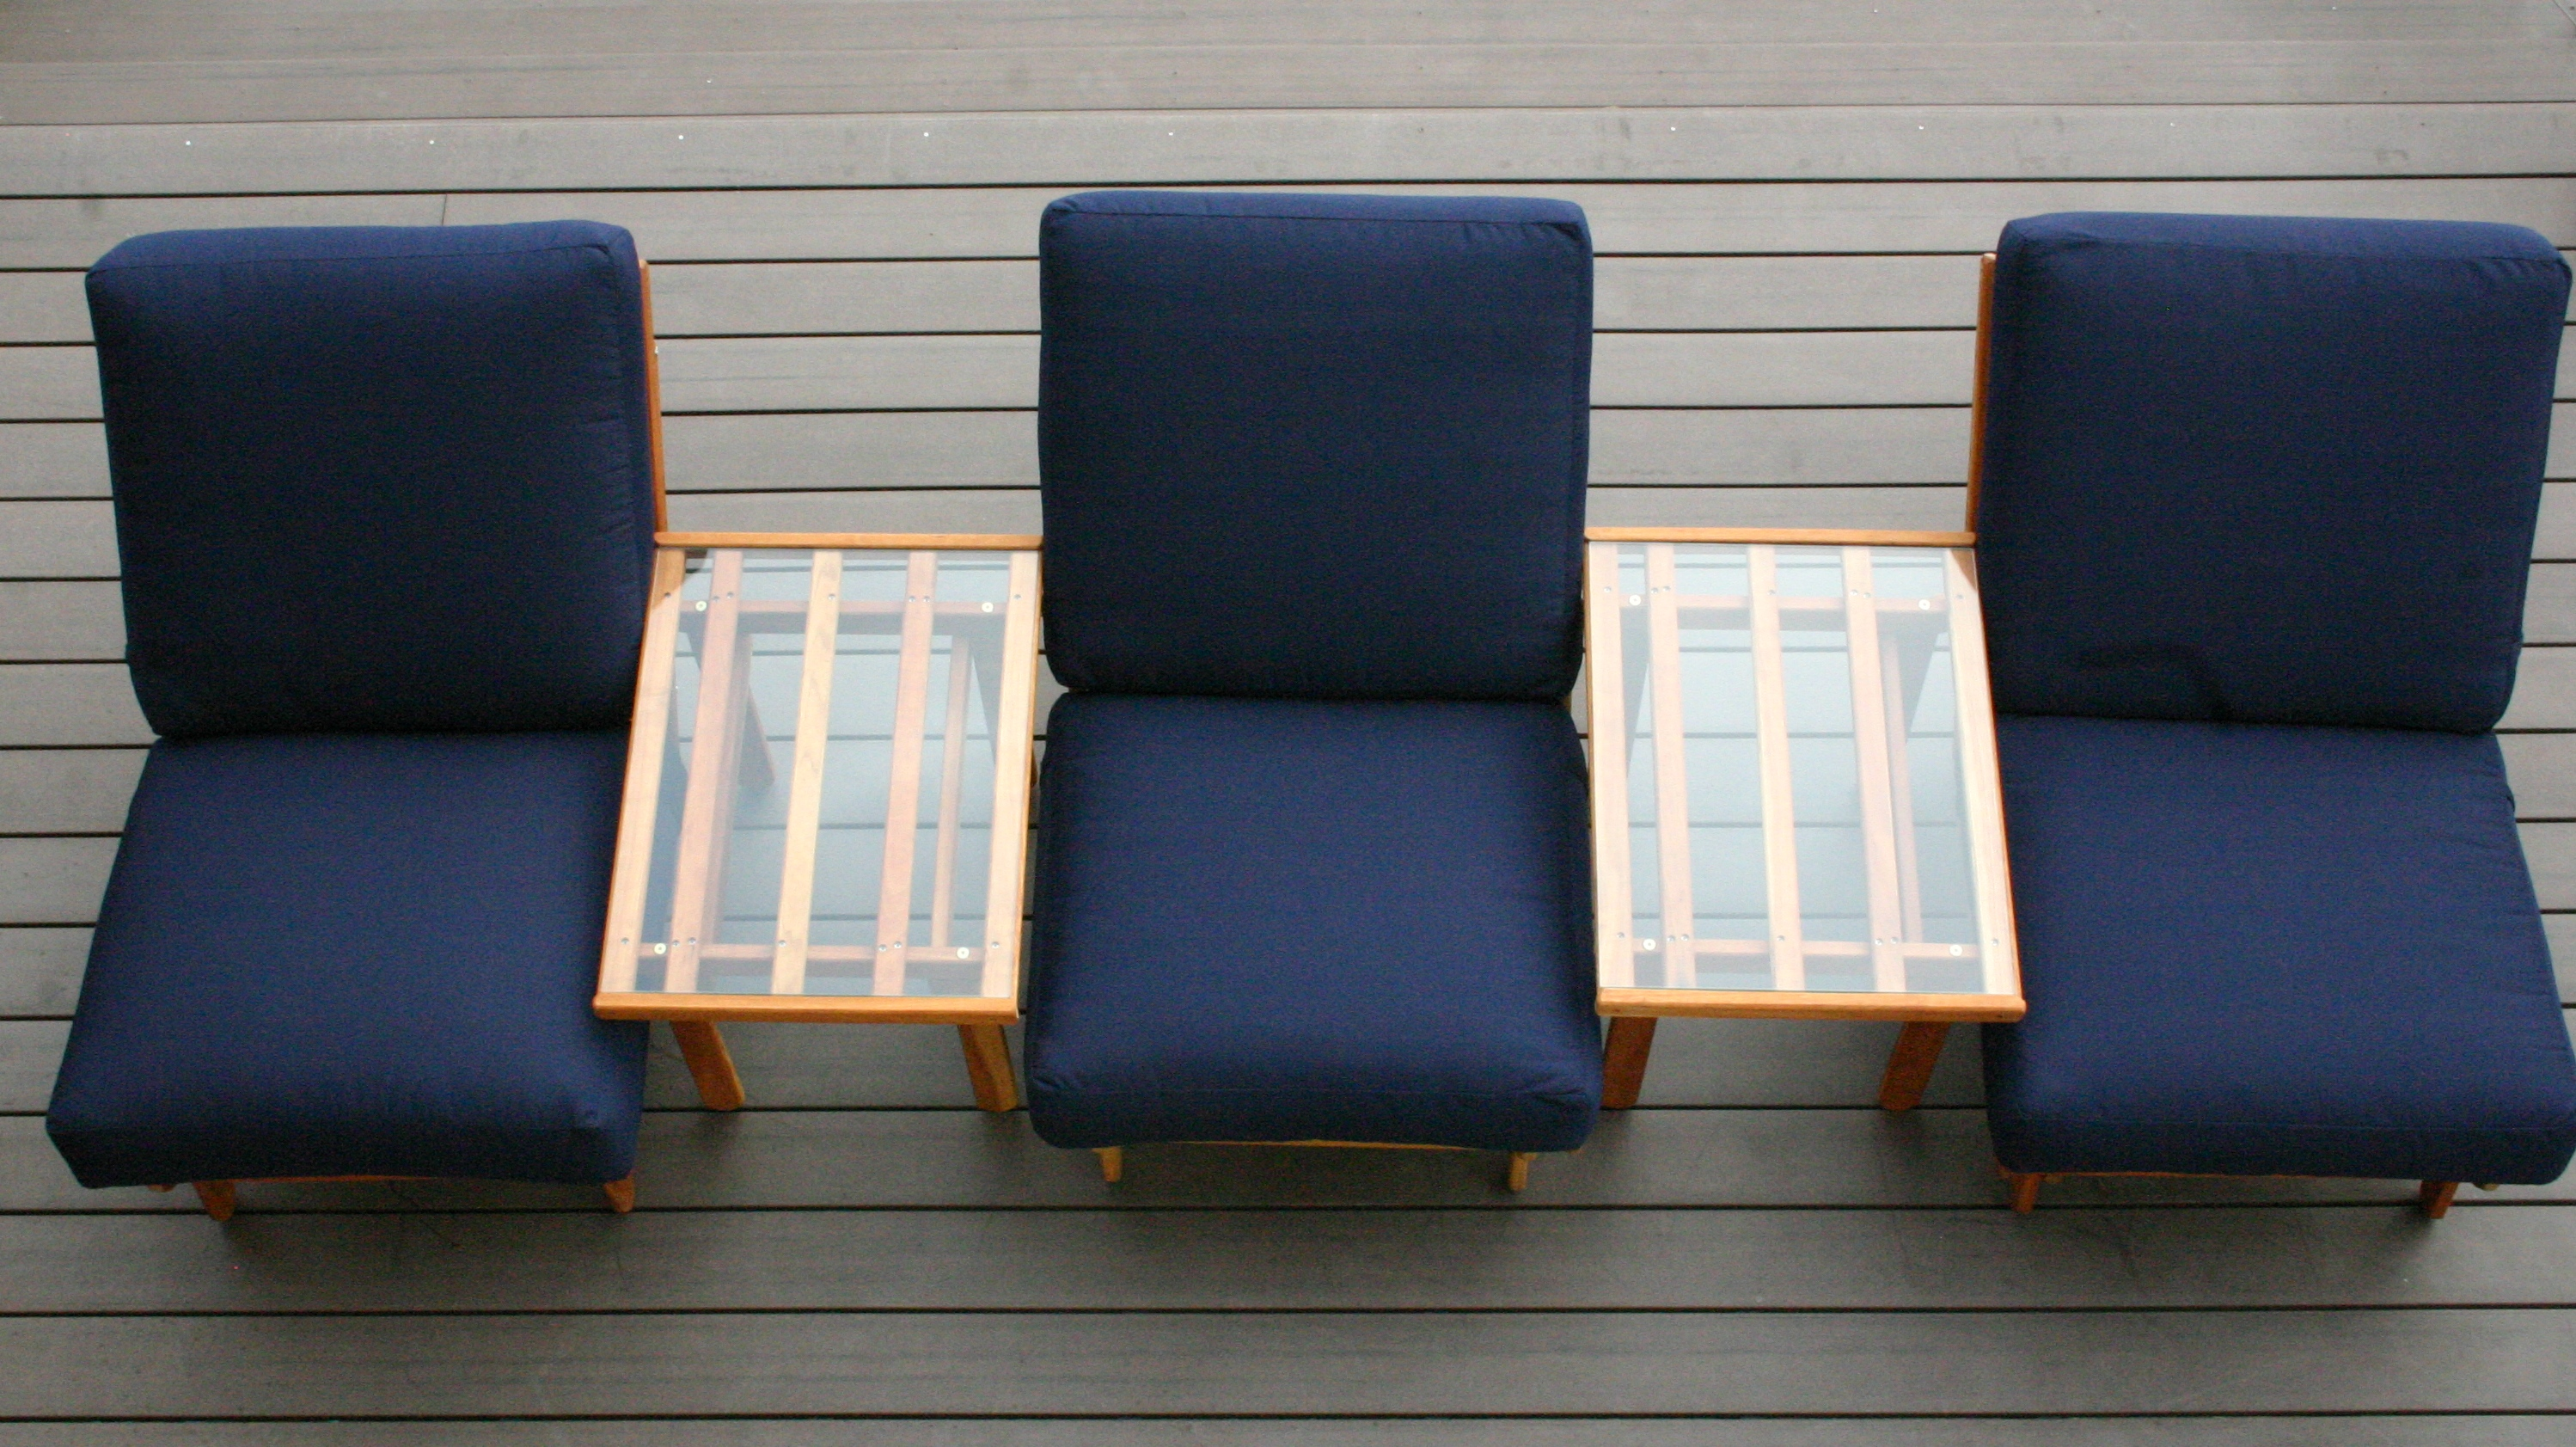 Three Chairs on the deck